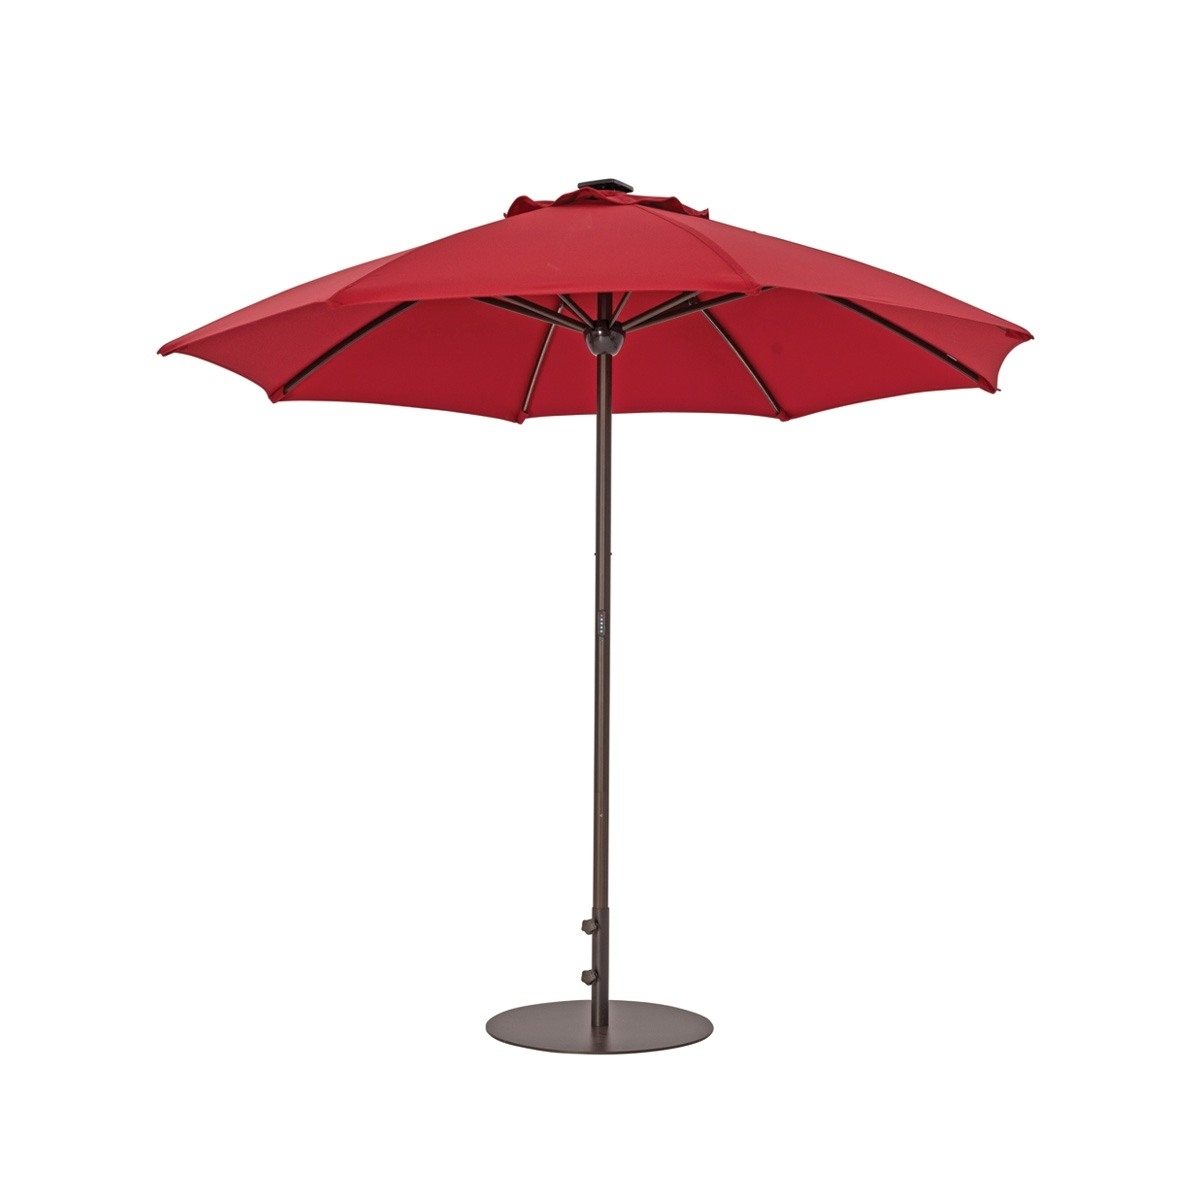 Patio Umbrellas With Solar Lights (View 10 of 20)